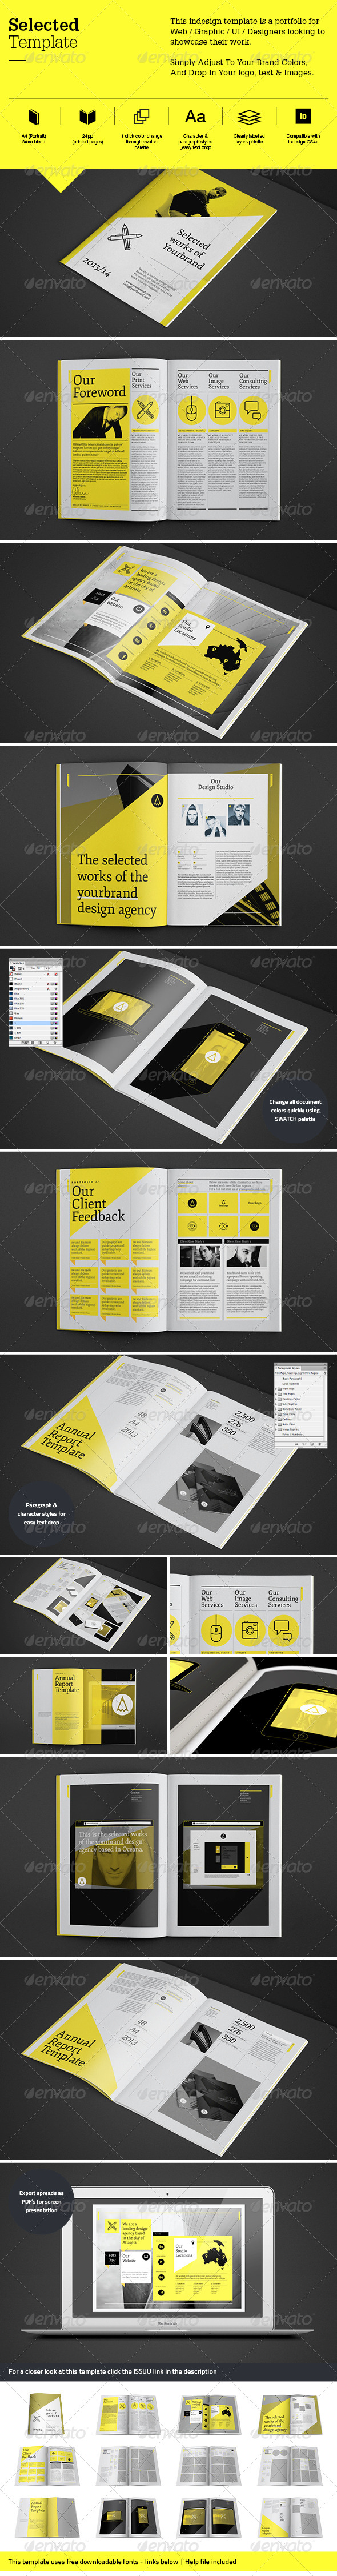 GraphicRiver Selected Template 5913114